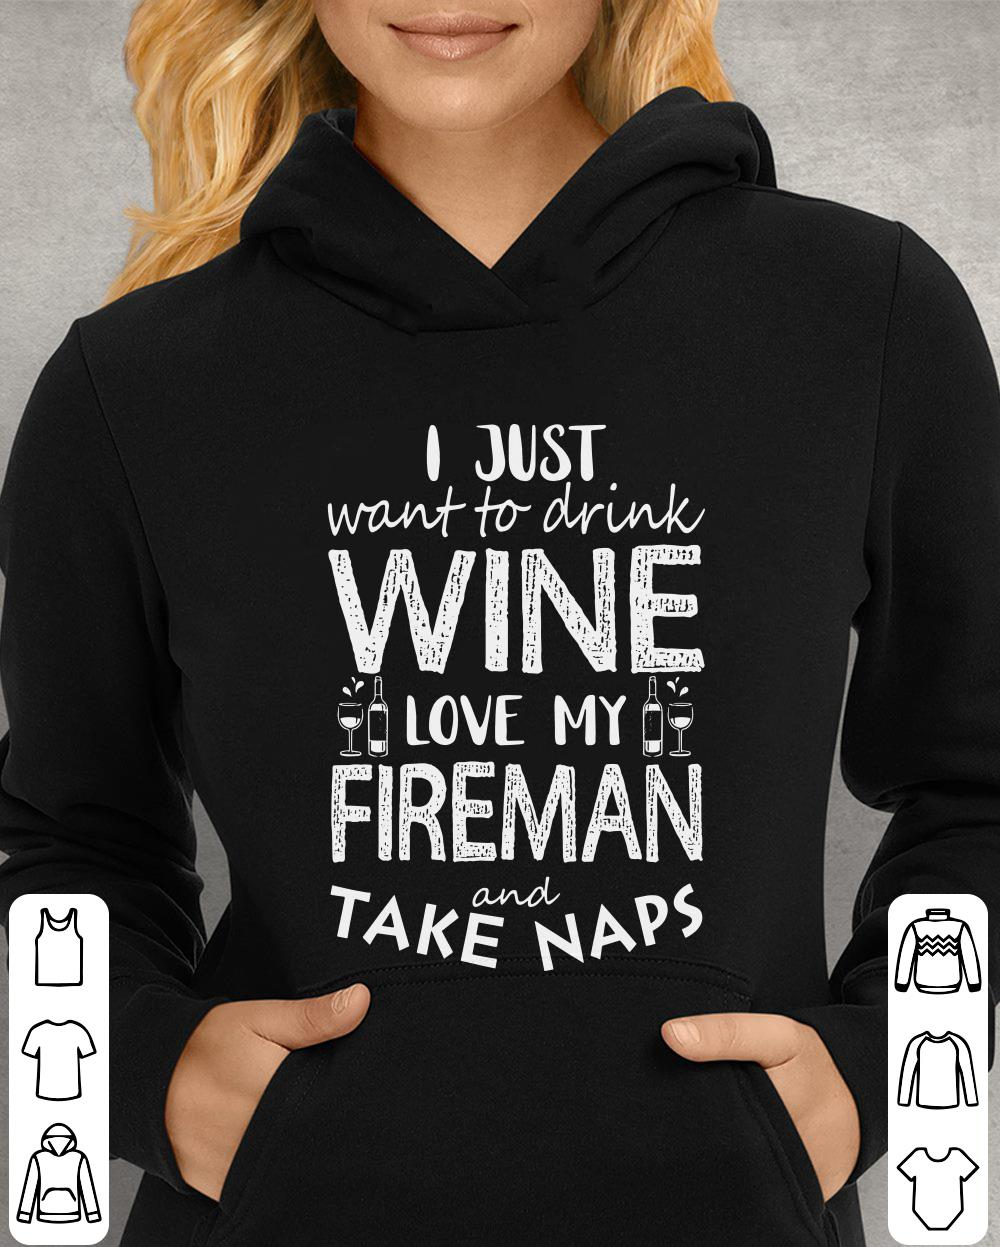 https://unicornshirts.net/images/2018/12/I-just-want-to-drink-wine-love-my-fireman-and-take-naps-shirt_4.jpg